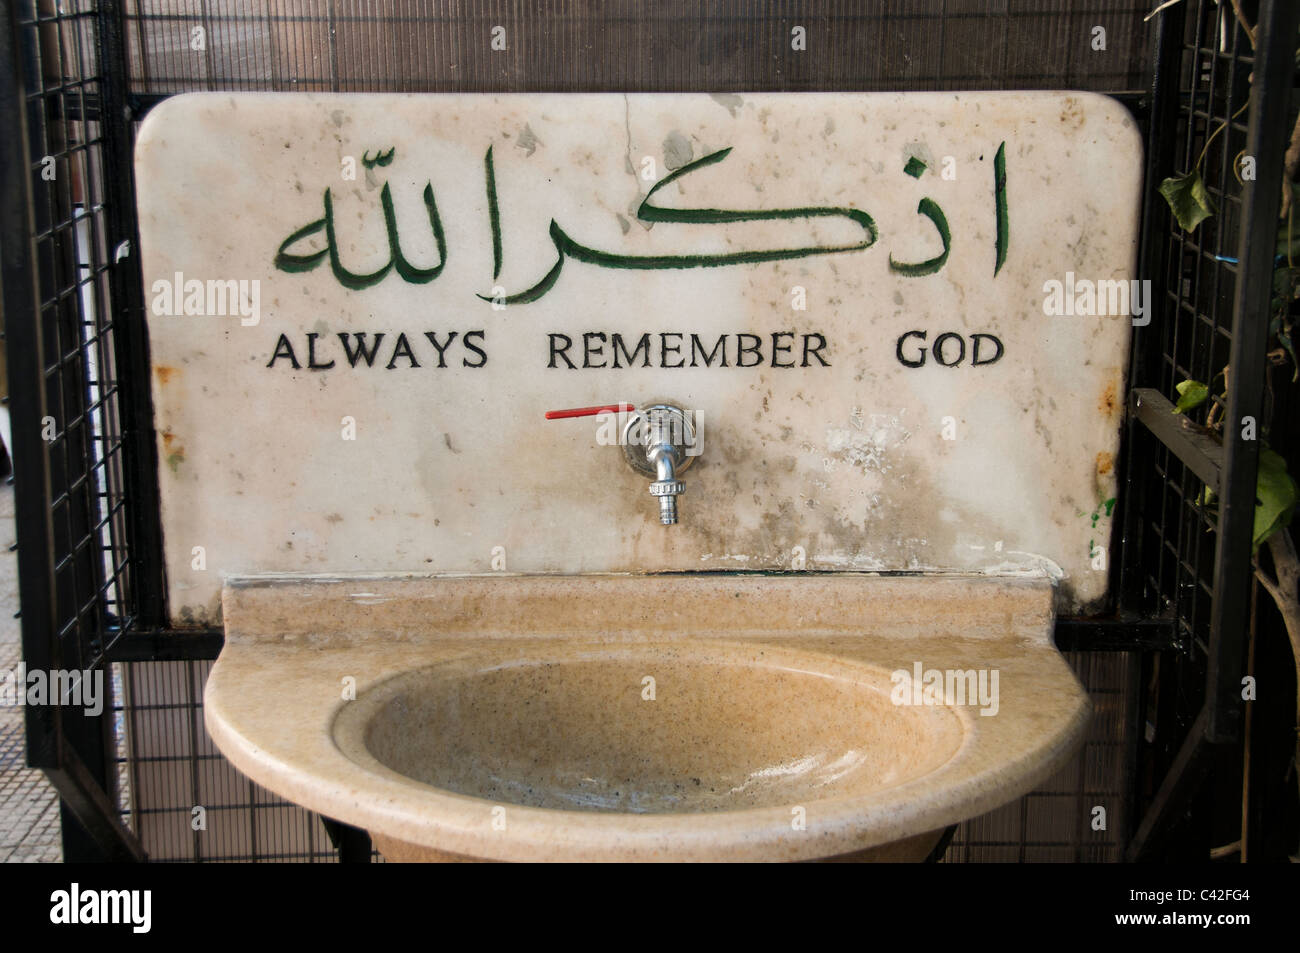 Damascus Syria Water fountain vessel always remember god - Stock Image